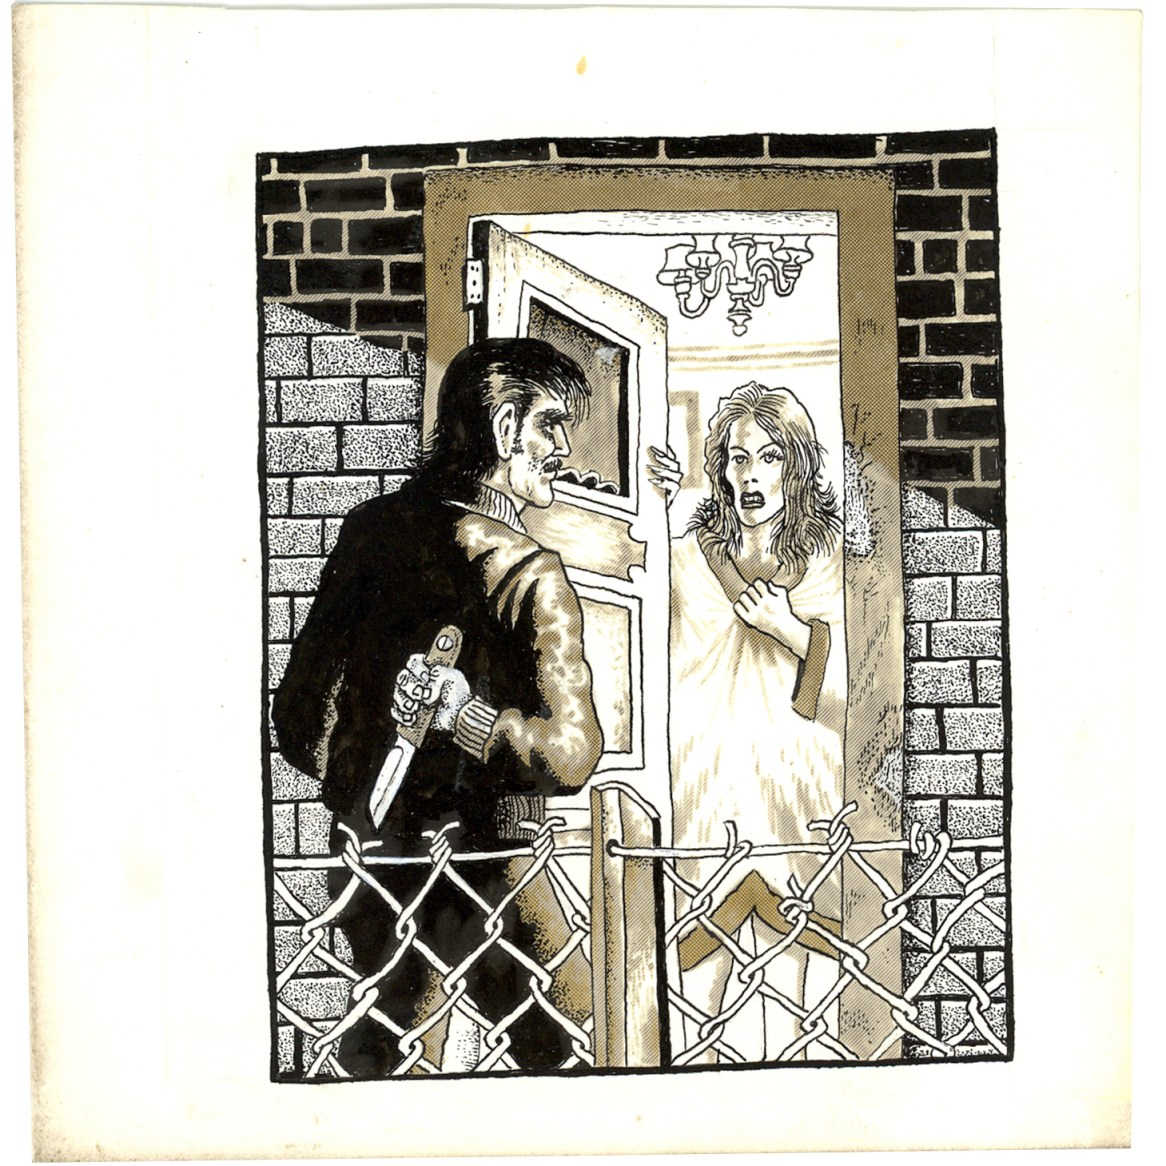 First Underground Comix Work of Joe Coleman; Final Days of Paul John Knowles, 1988 Ink on paper 6.25 x 6.25 in. $3,000